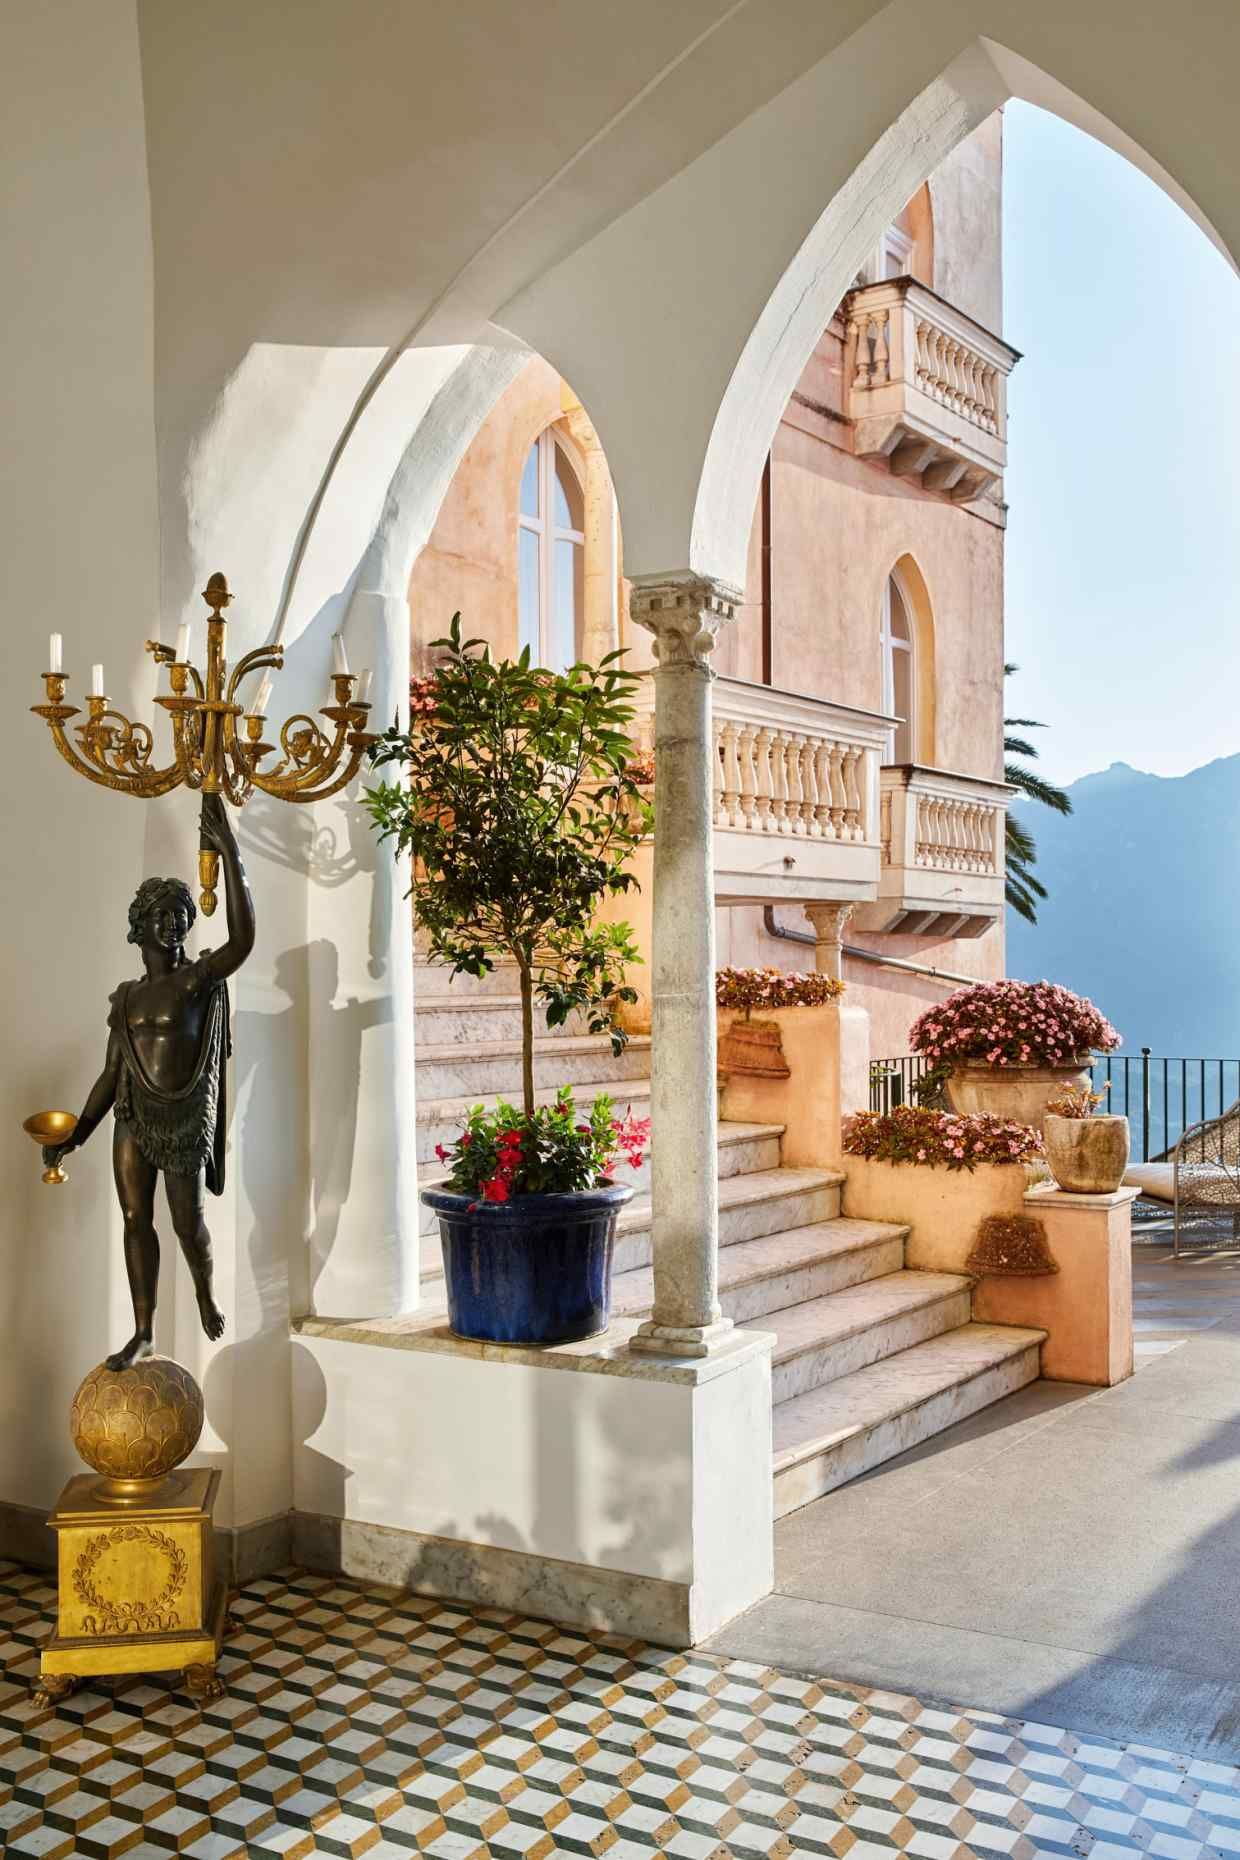 HOW TO SPEND IT in 2020 Villas in italy, Hotel, Amalfi coast